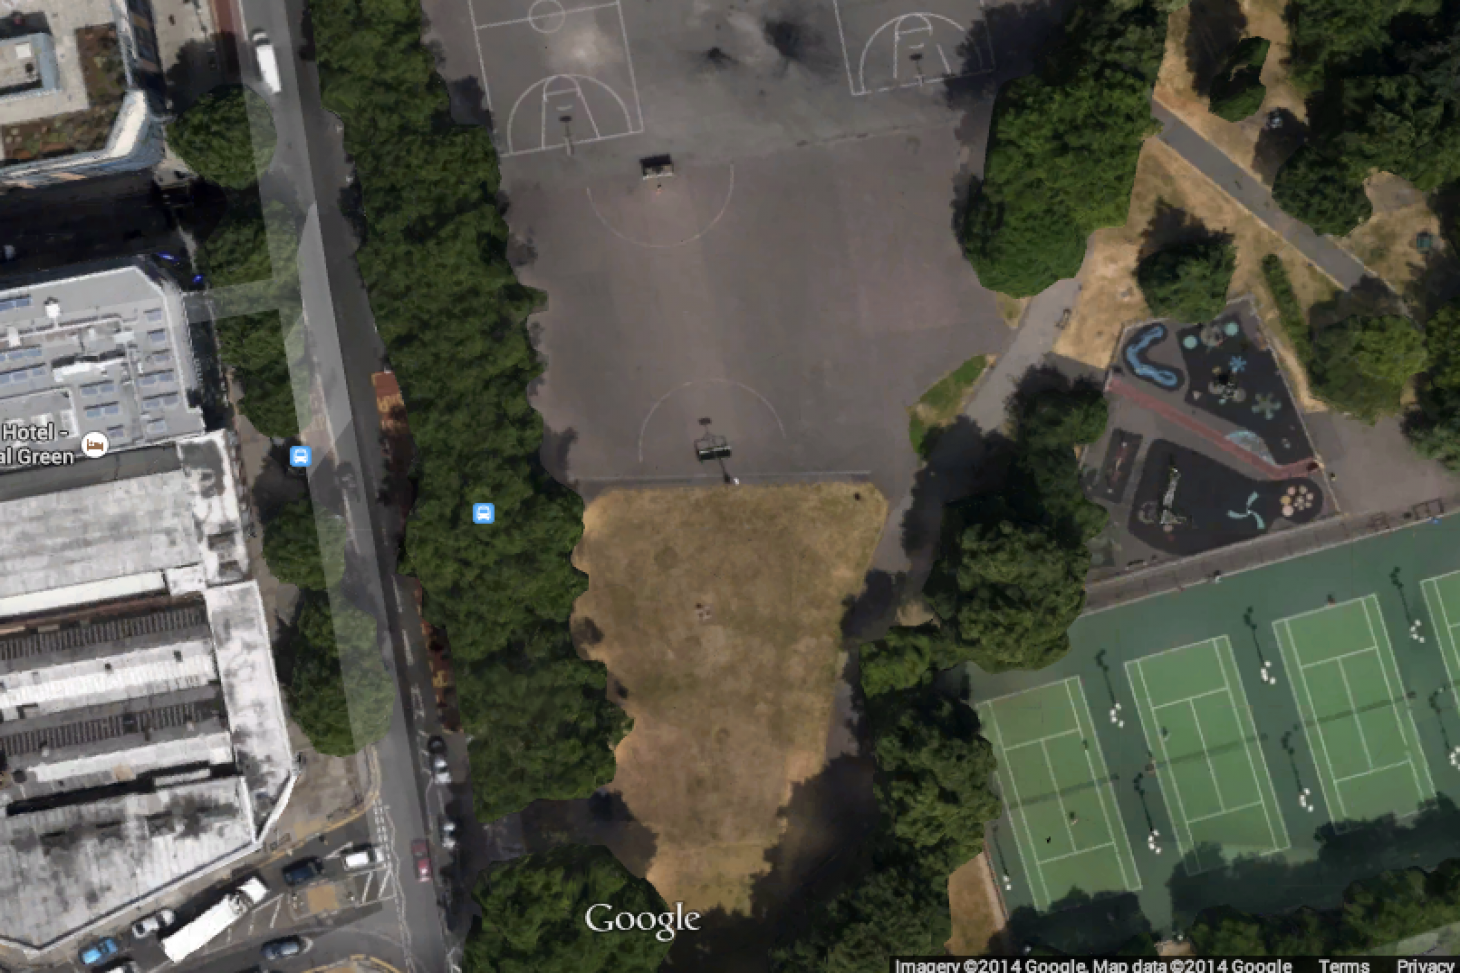 Bethnal Green Gardens 5 a side | Concrete football pitch